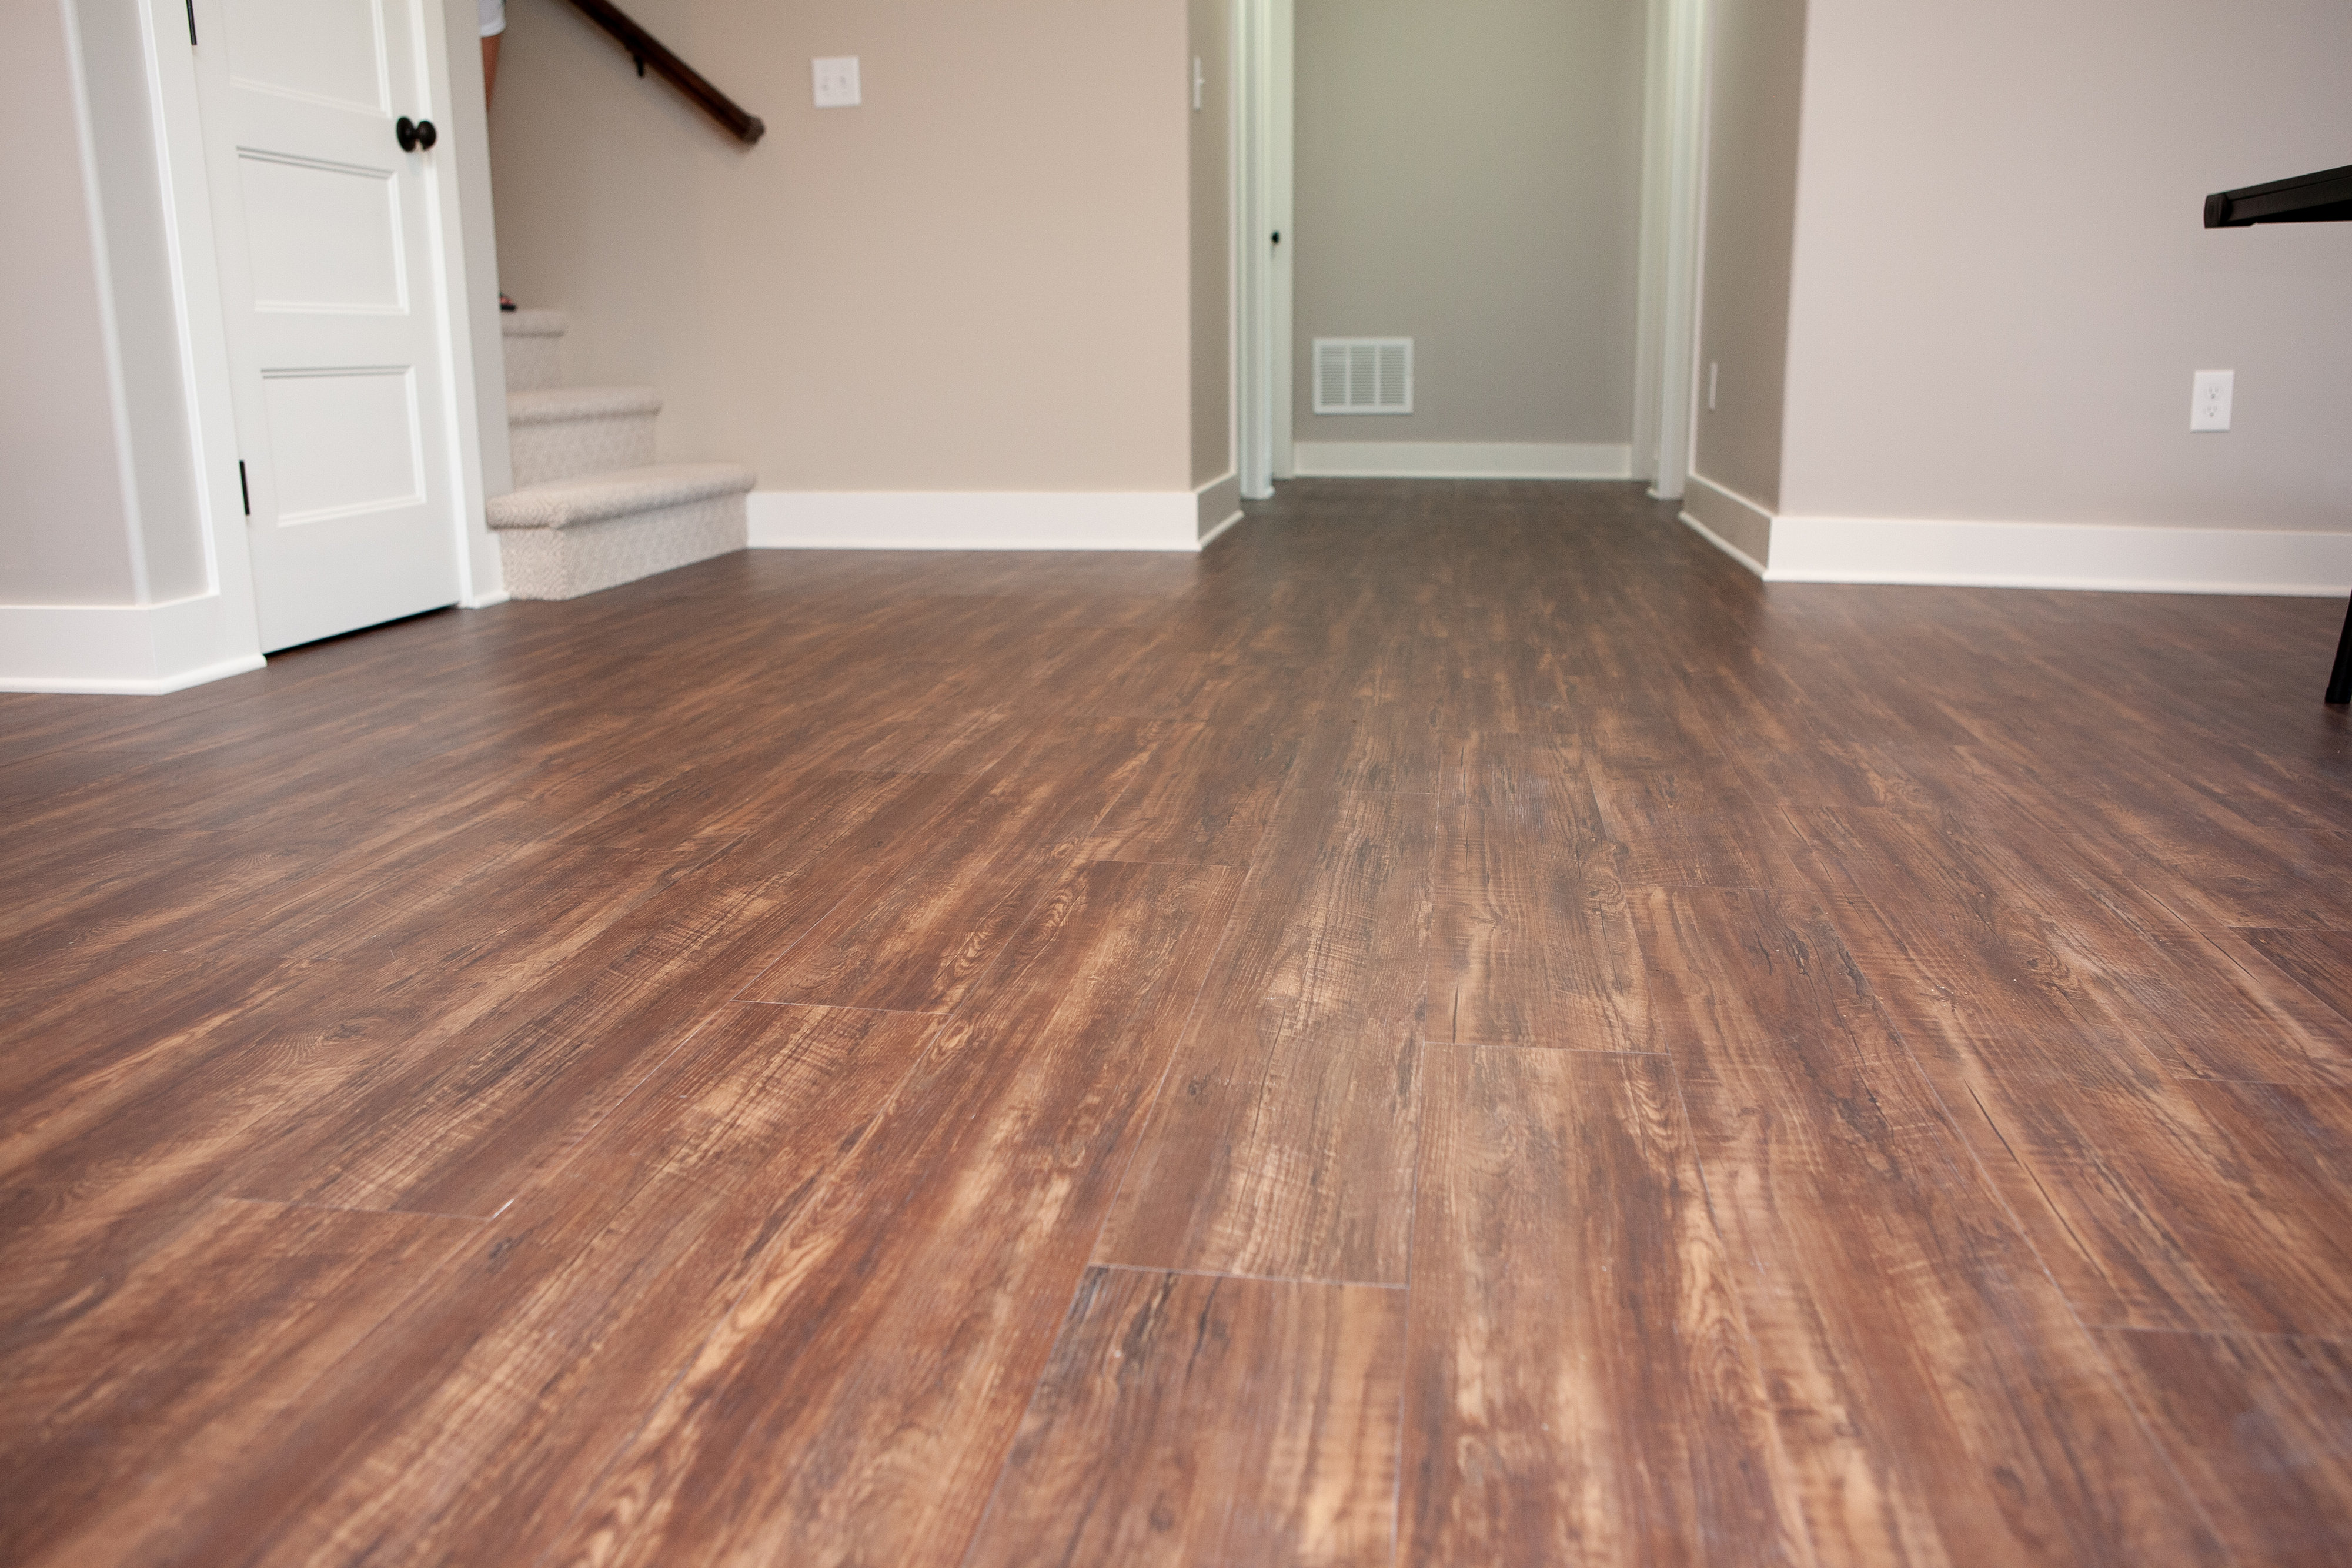 Basement Finish near Wichita,, KS: Luxury Vinyl Plank flooring